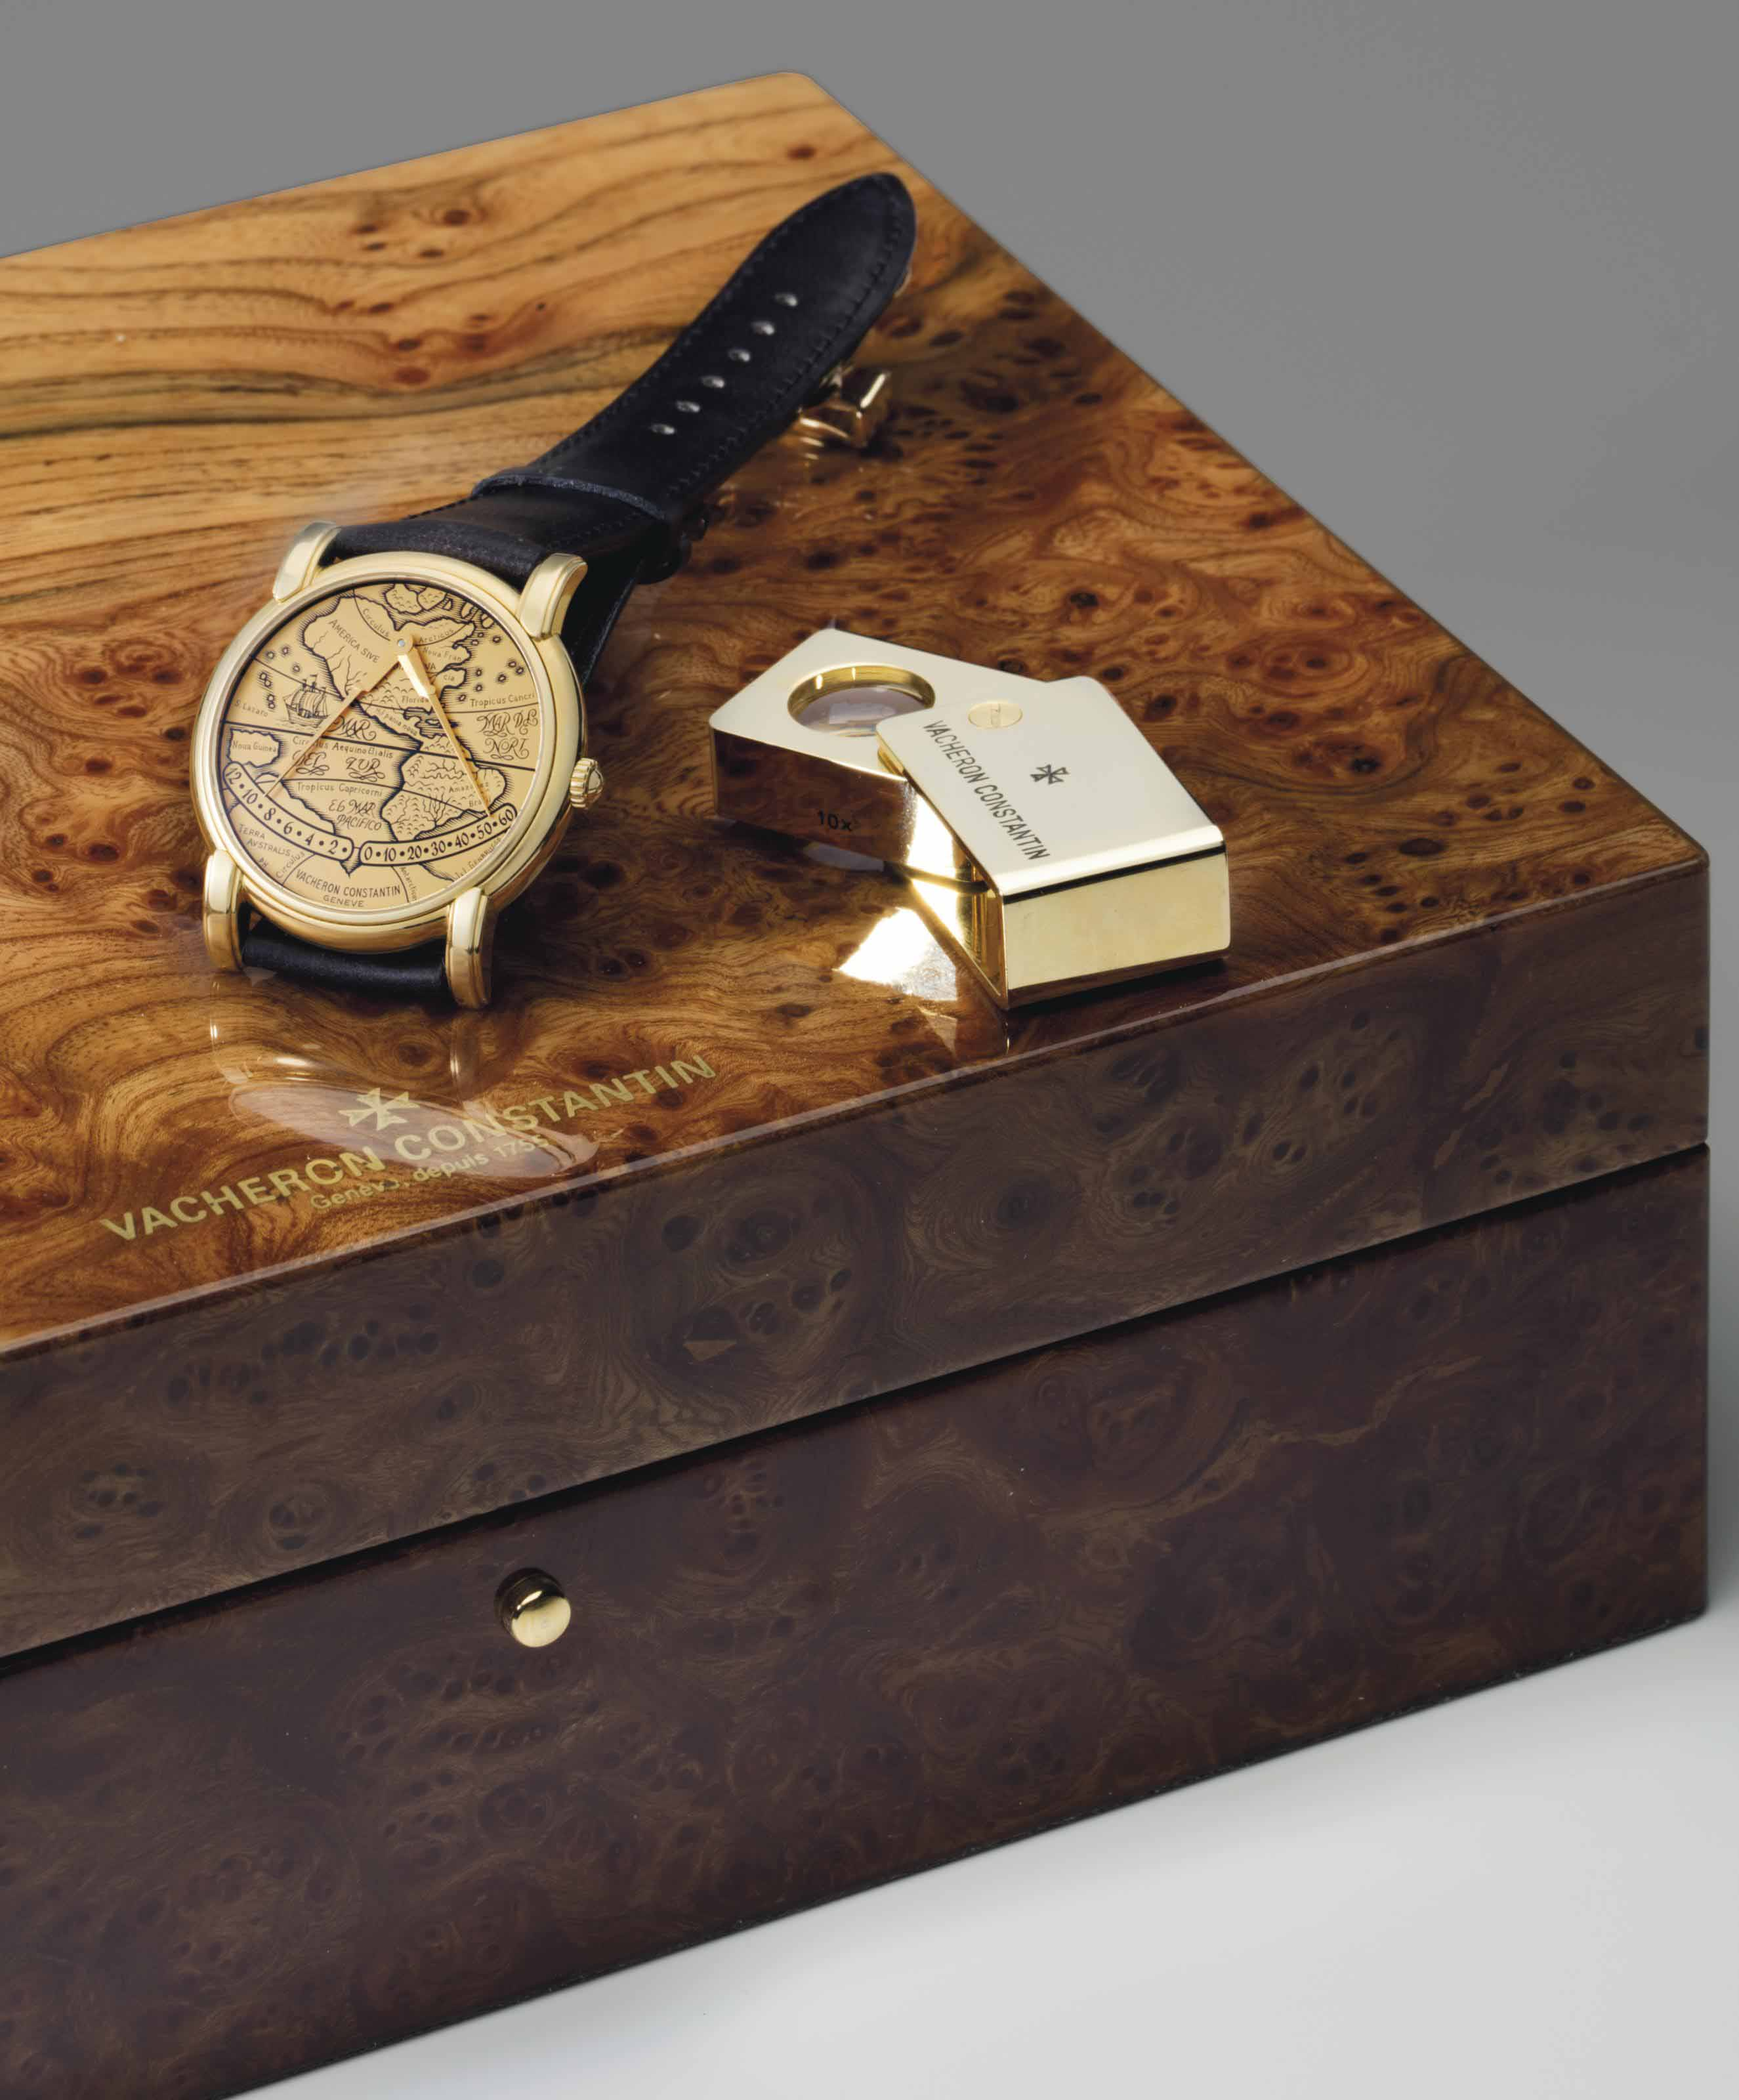 Vacheron Constantin. A Fine 18k Gold Automatic Dual Retrograde Wristwatch with Map of the Americas and Australia